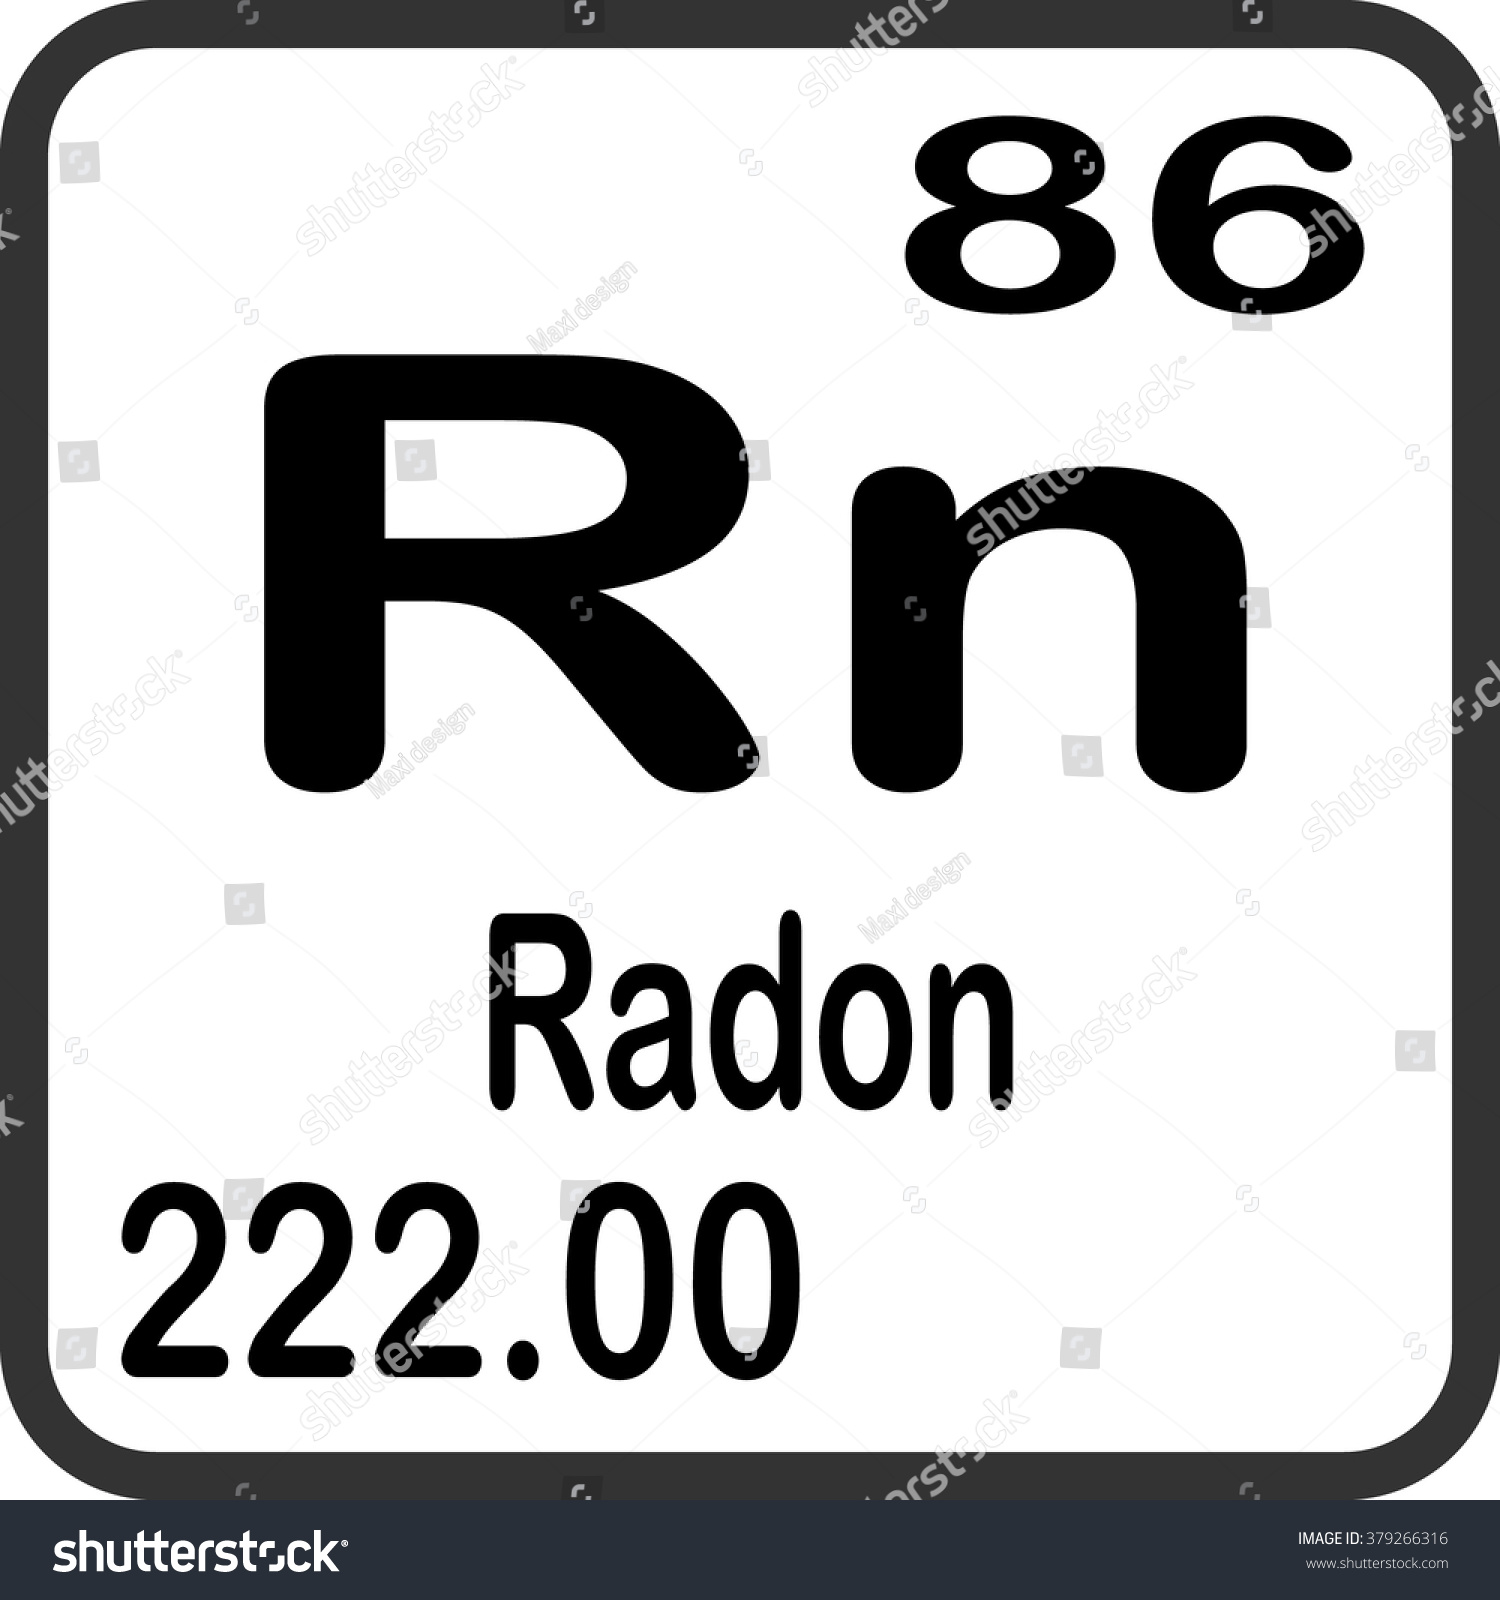 Radon on periodic table choice image periodic table images radon on periodic table choice image periodic table images radon on periodic table choice image periodic gamestrikefo Image collections